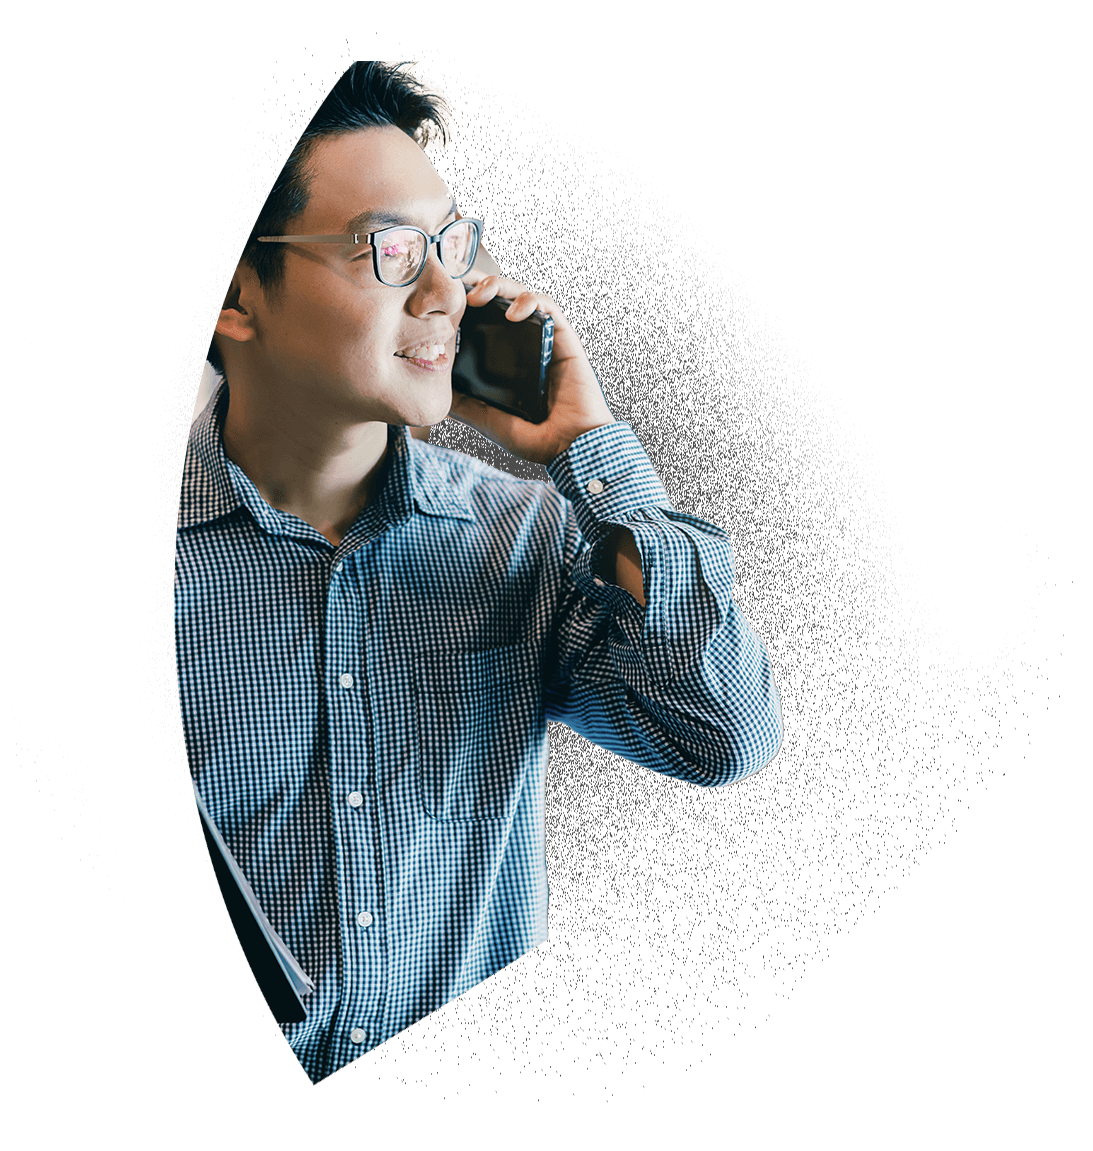 Entrepreneur on a phone call with a BarterPay client.